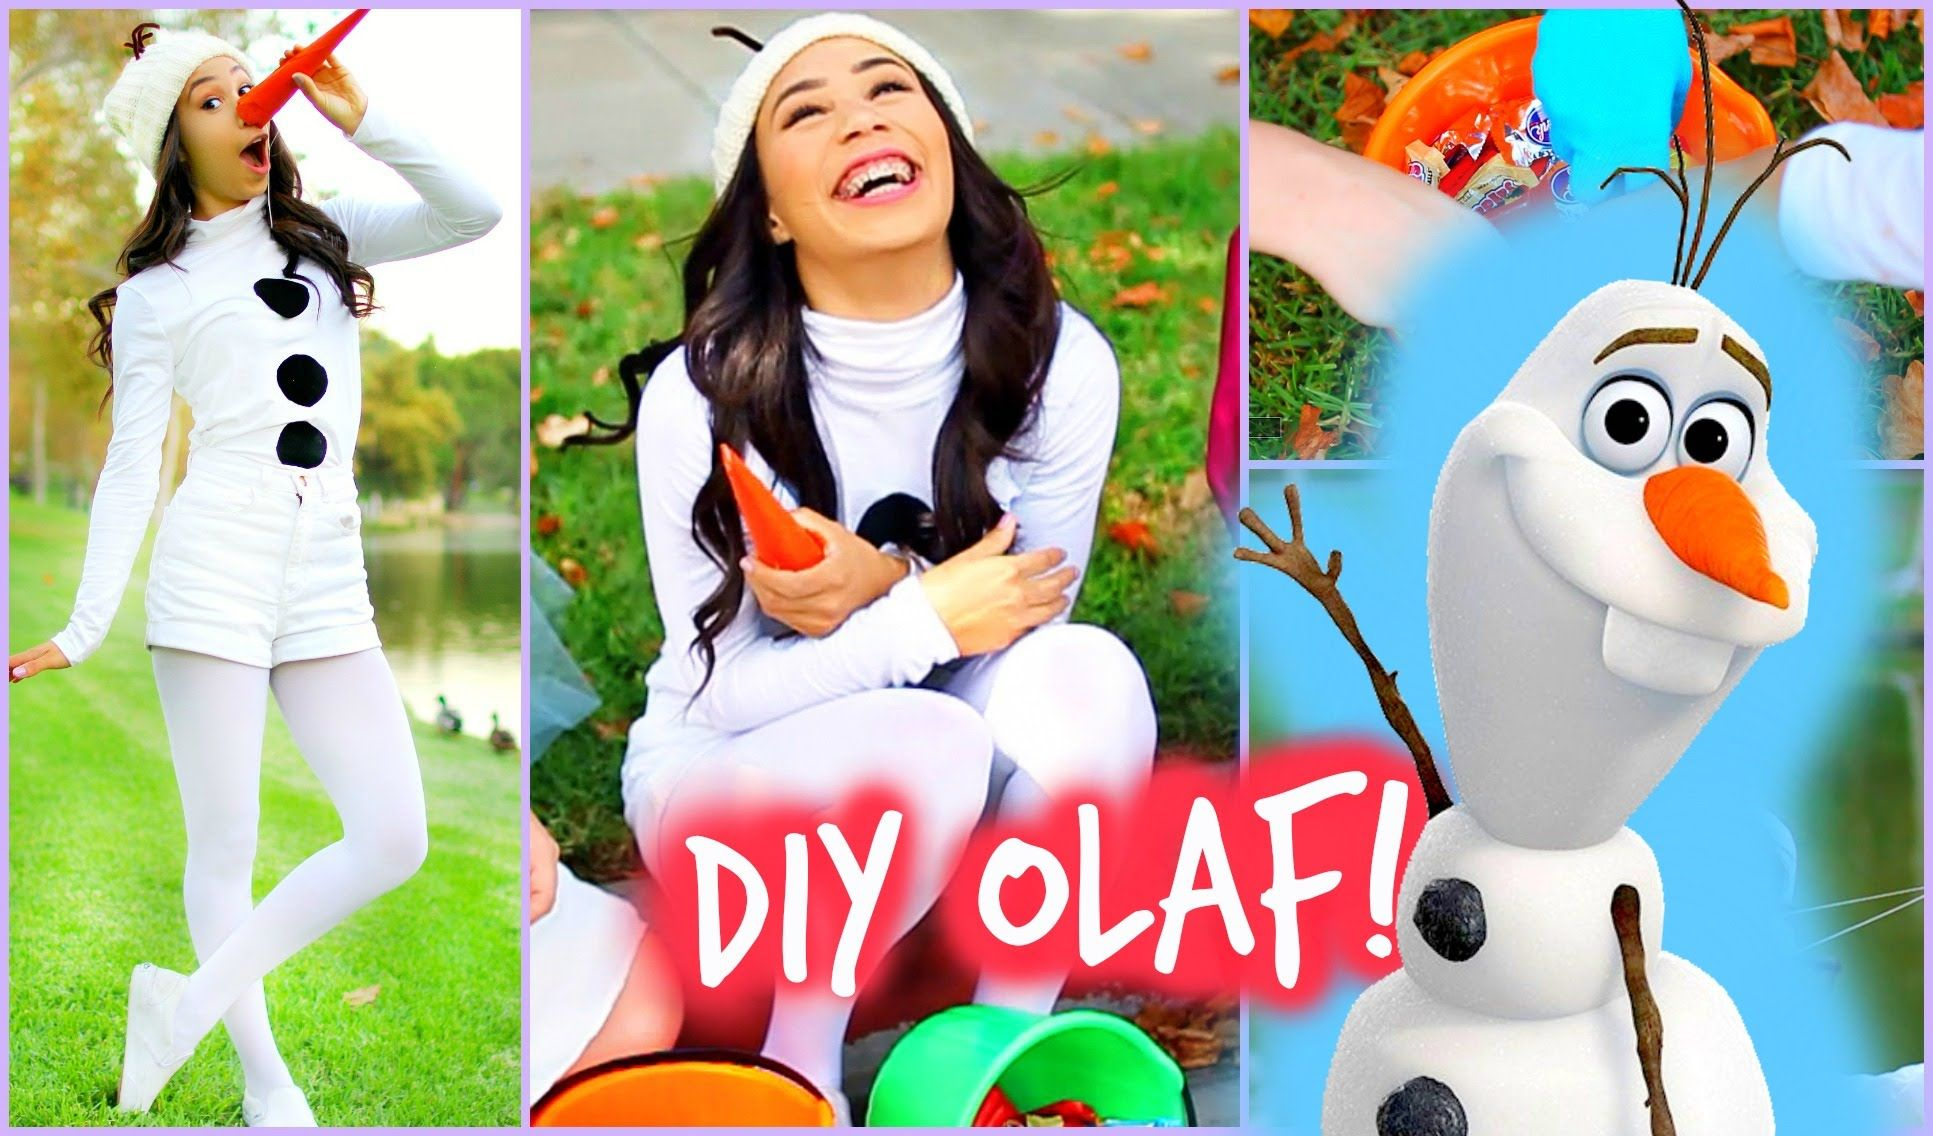 Diy olaf frozen halloween costume easy and affordable diy olaf frozen halloween costume easy and affordable mylifeaseva evagutowski solutioingenieria Image collections